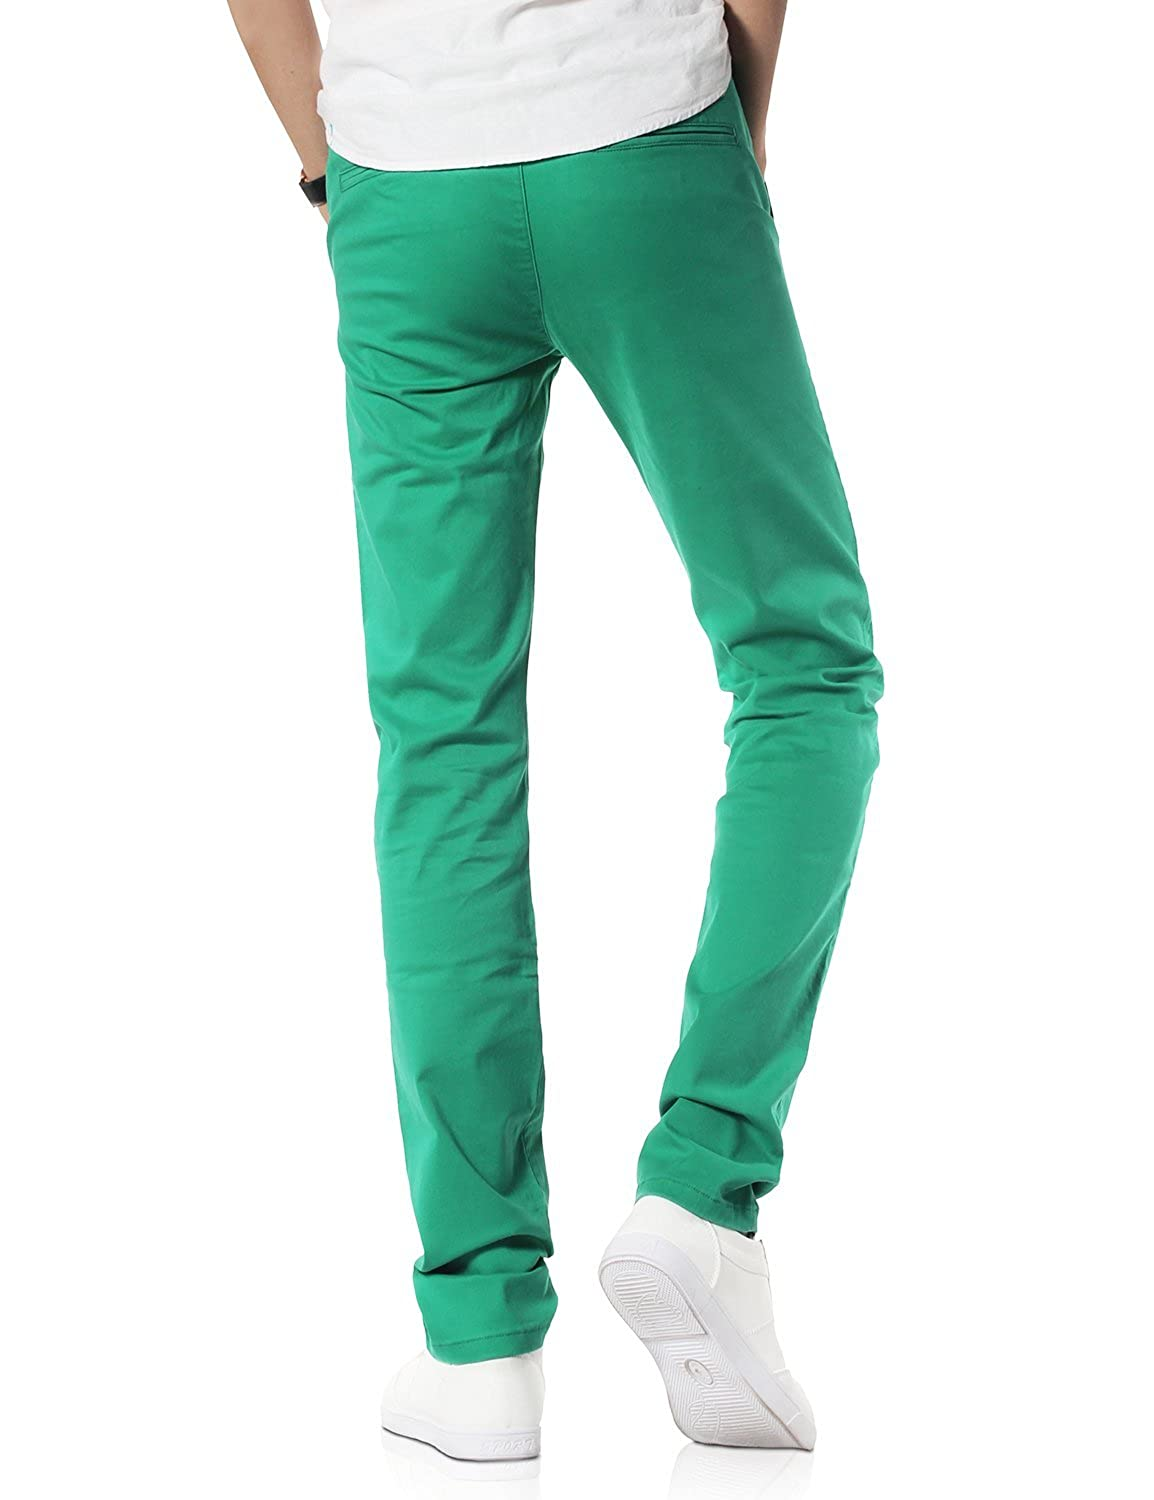 Demon&Hunter Men's Slim-Fit Peacock Green Chino Trousers S91Y6